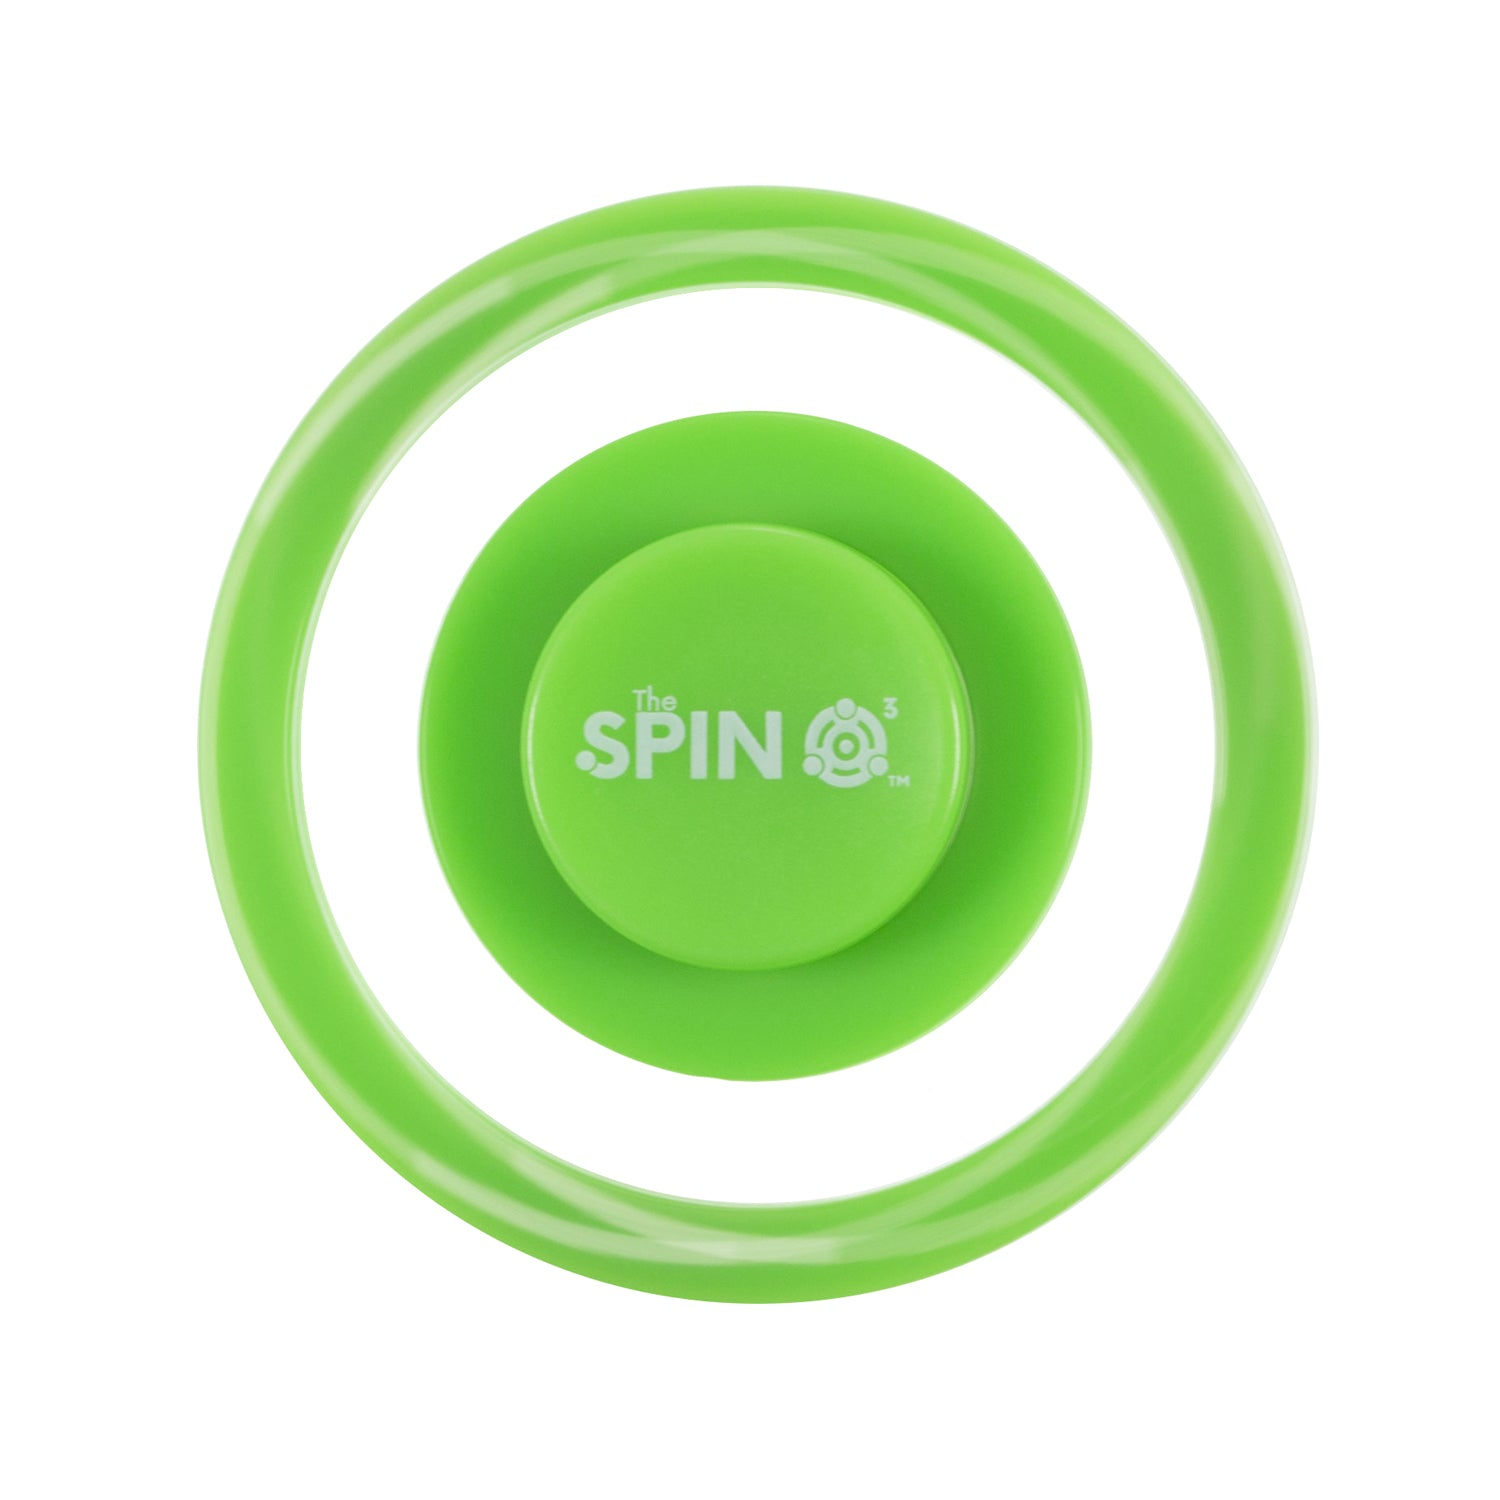 The Spin O3™ Glow-In-The-Dark, High-Speed Fidget Spinner